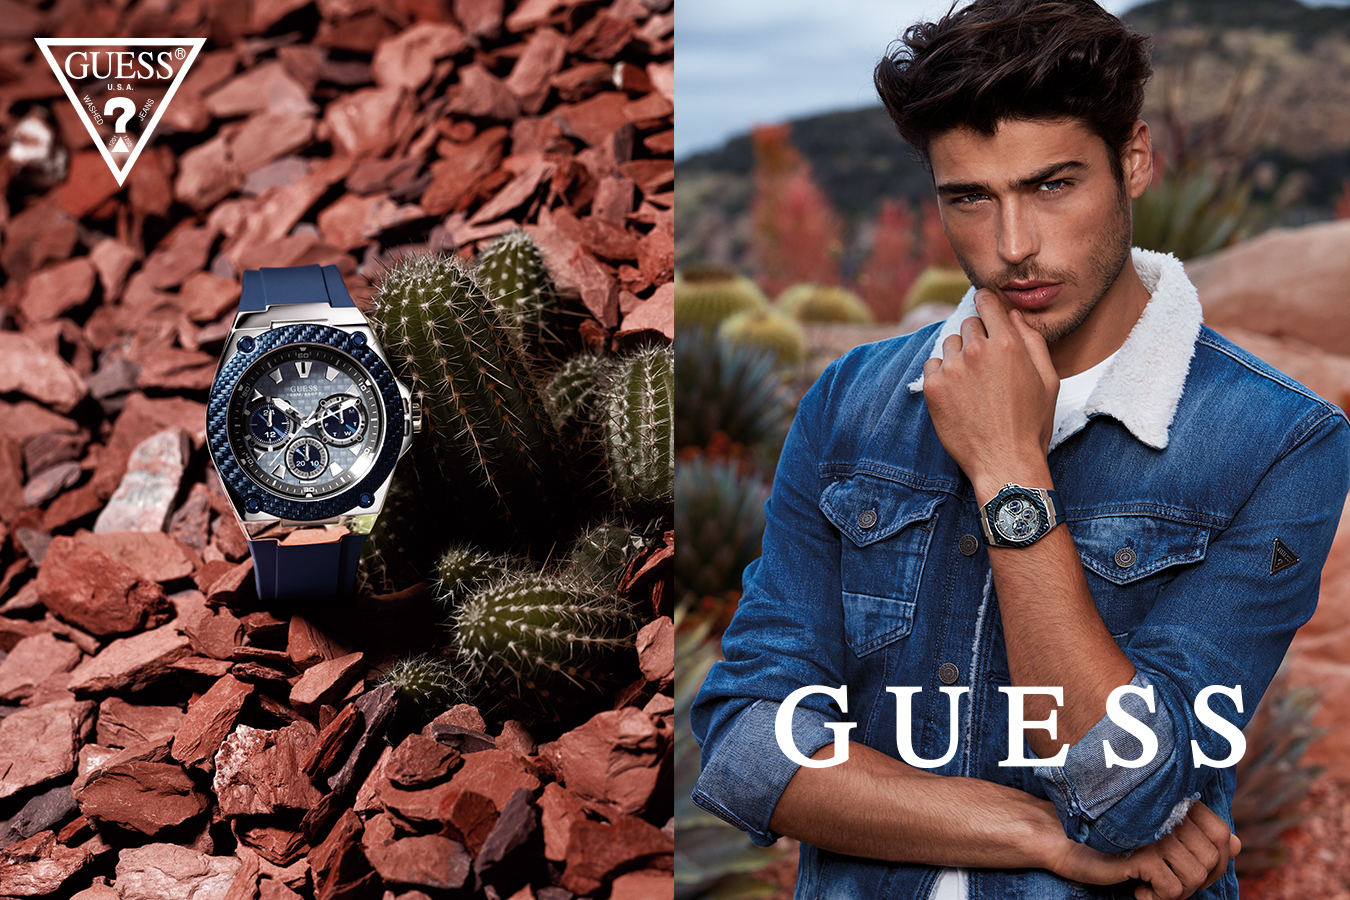 guess_4